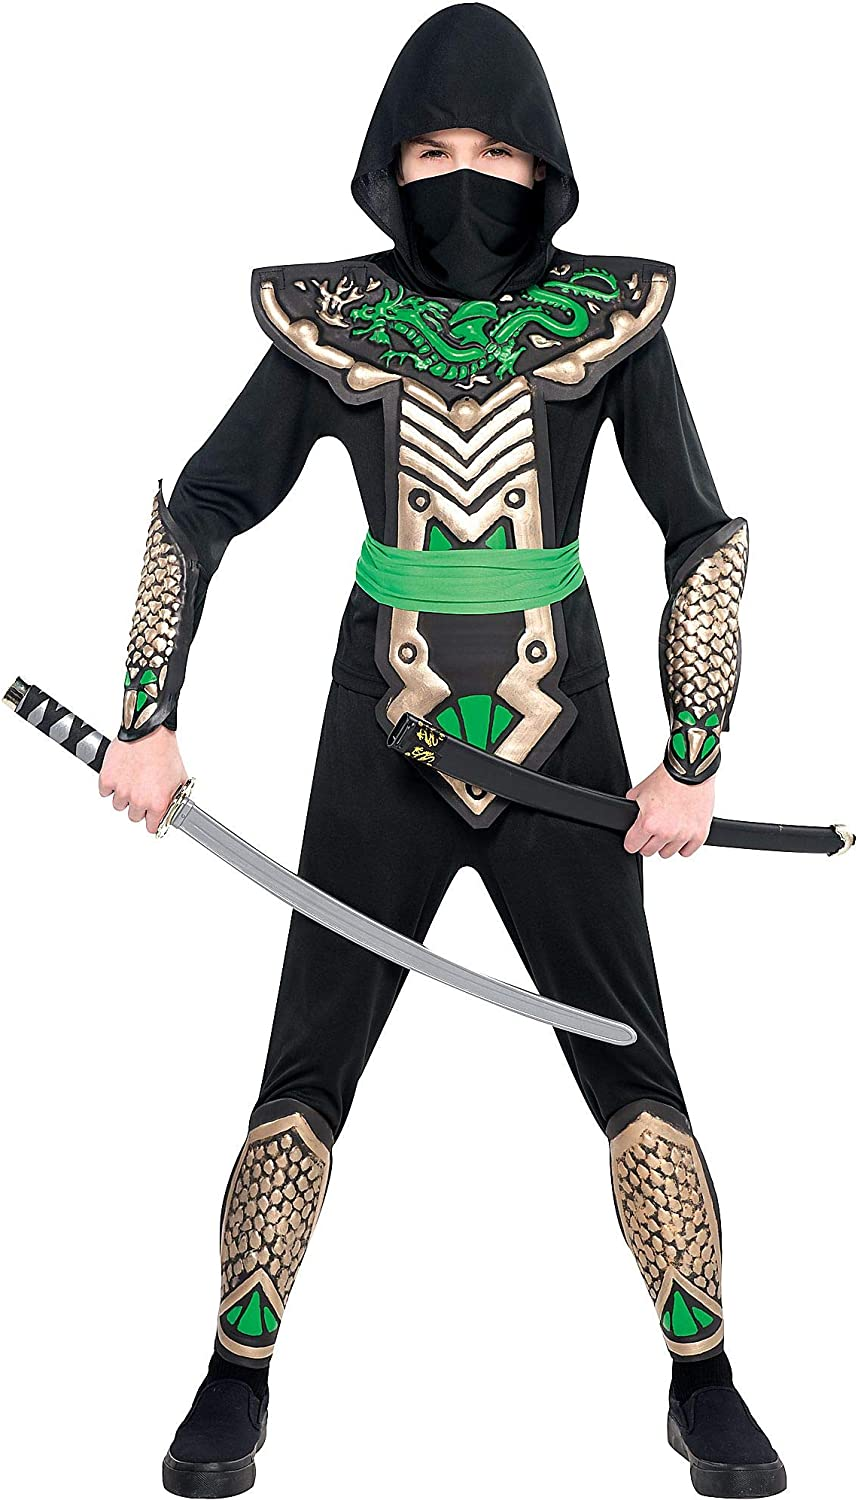 Ninja Dragon Costume for Boys